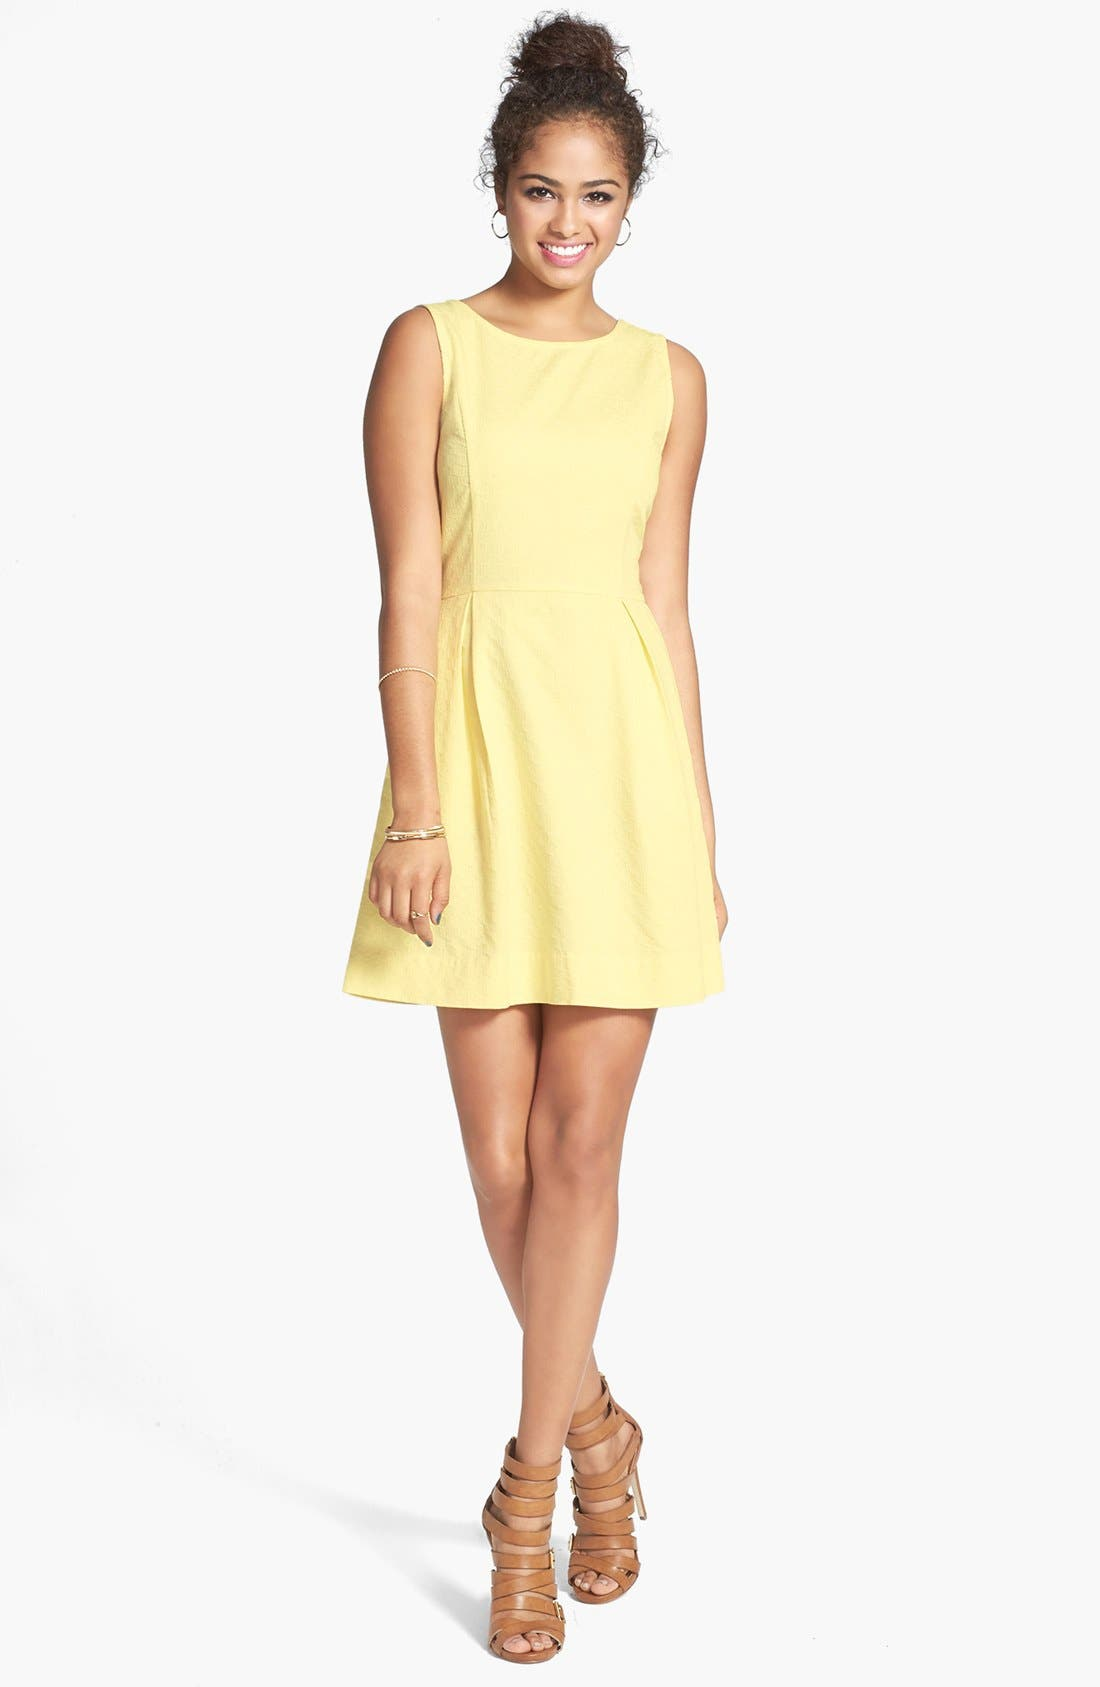 Alternate Image 1 Selected - Frenchi® Textured Cotton Fit & Flare Dress (Juniors)